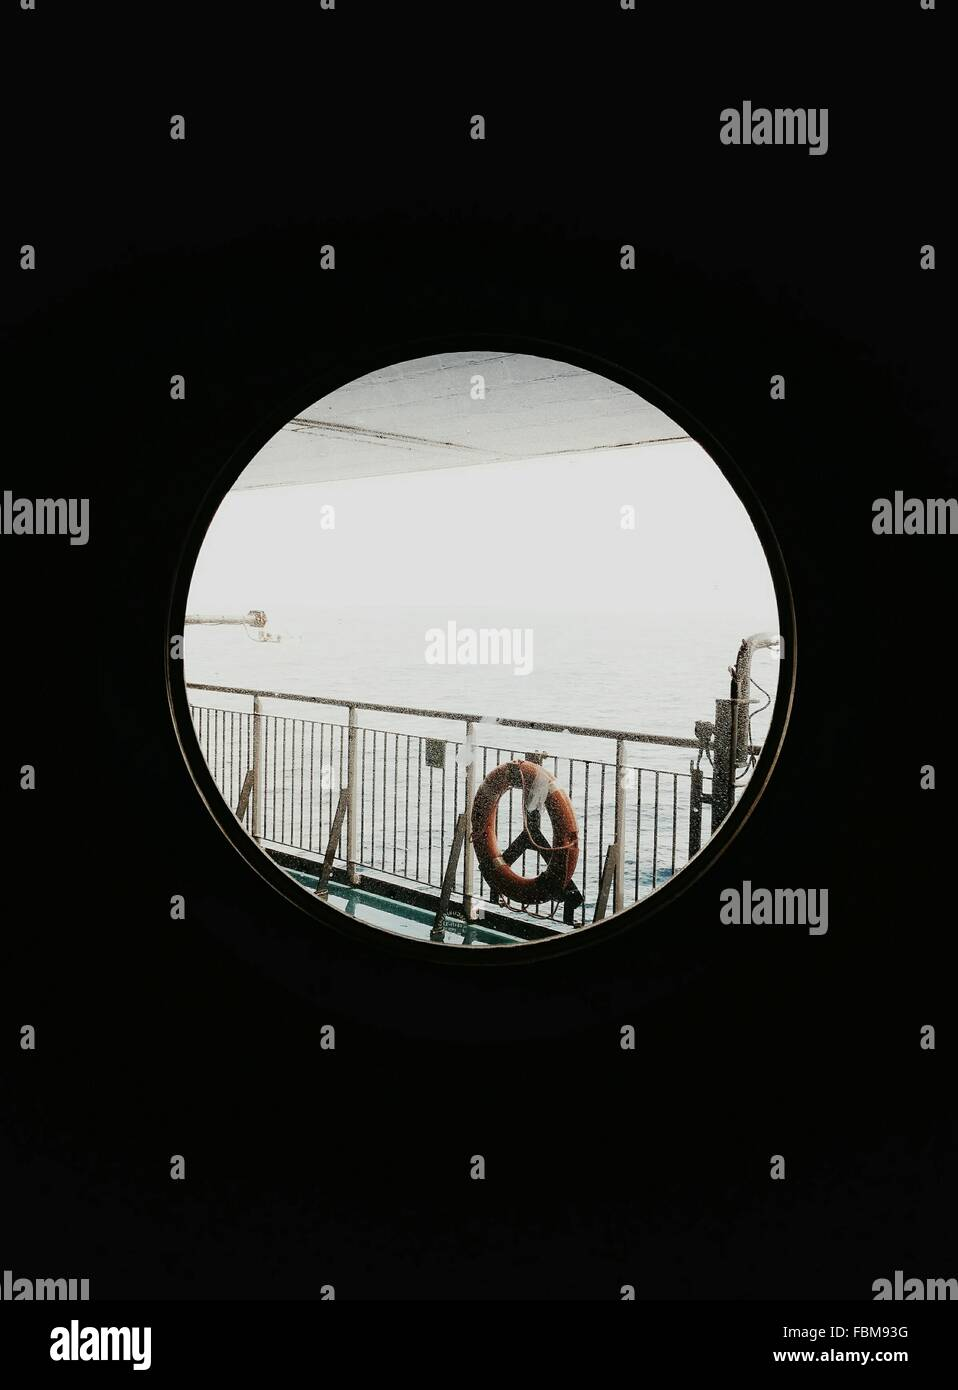 View Of Safety Ring On Railing Though Round Window - Stock Image